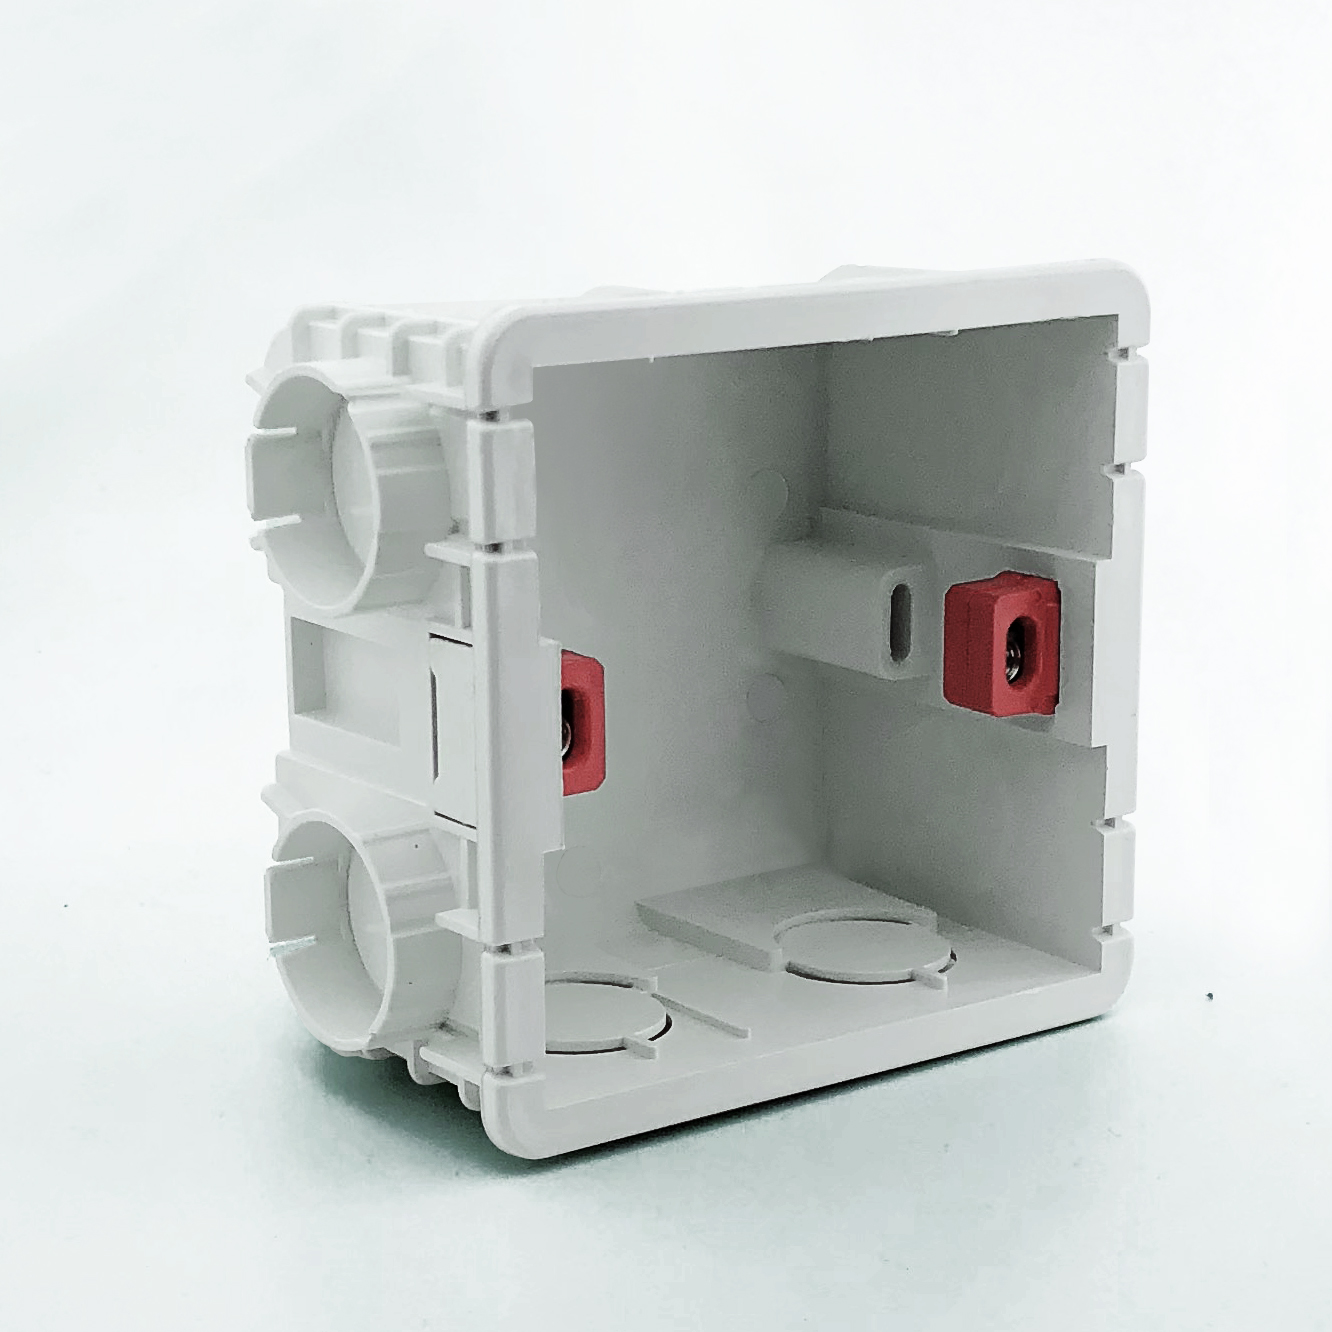 Delviz Wall Switch BOX Wall Socket Cassette,80mm Plastic Materials,For Standard Wall Light Switch EU Standard Internal Mount Box